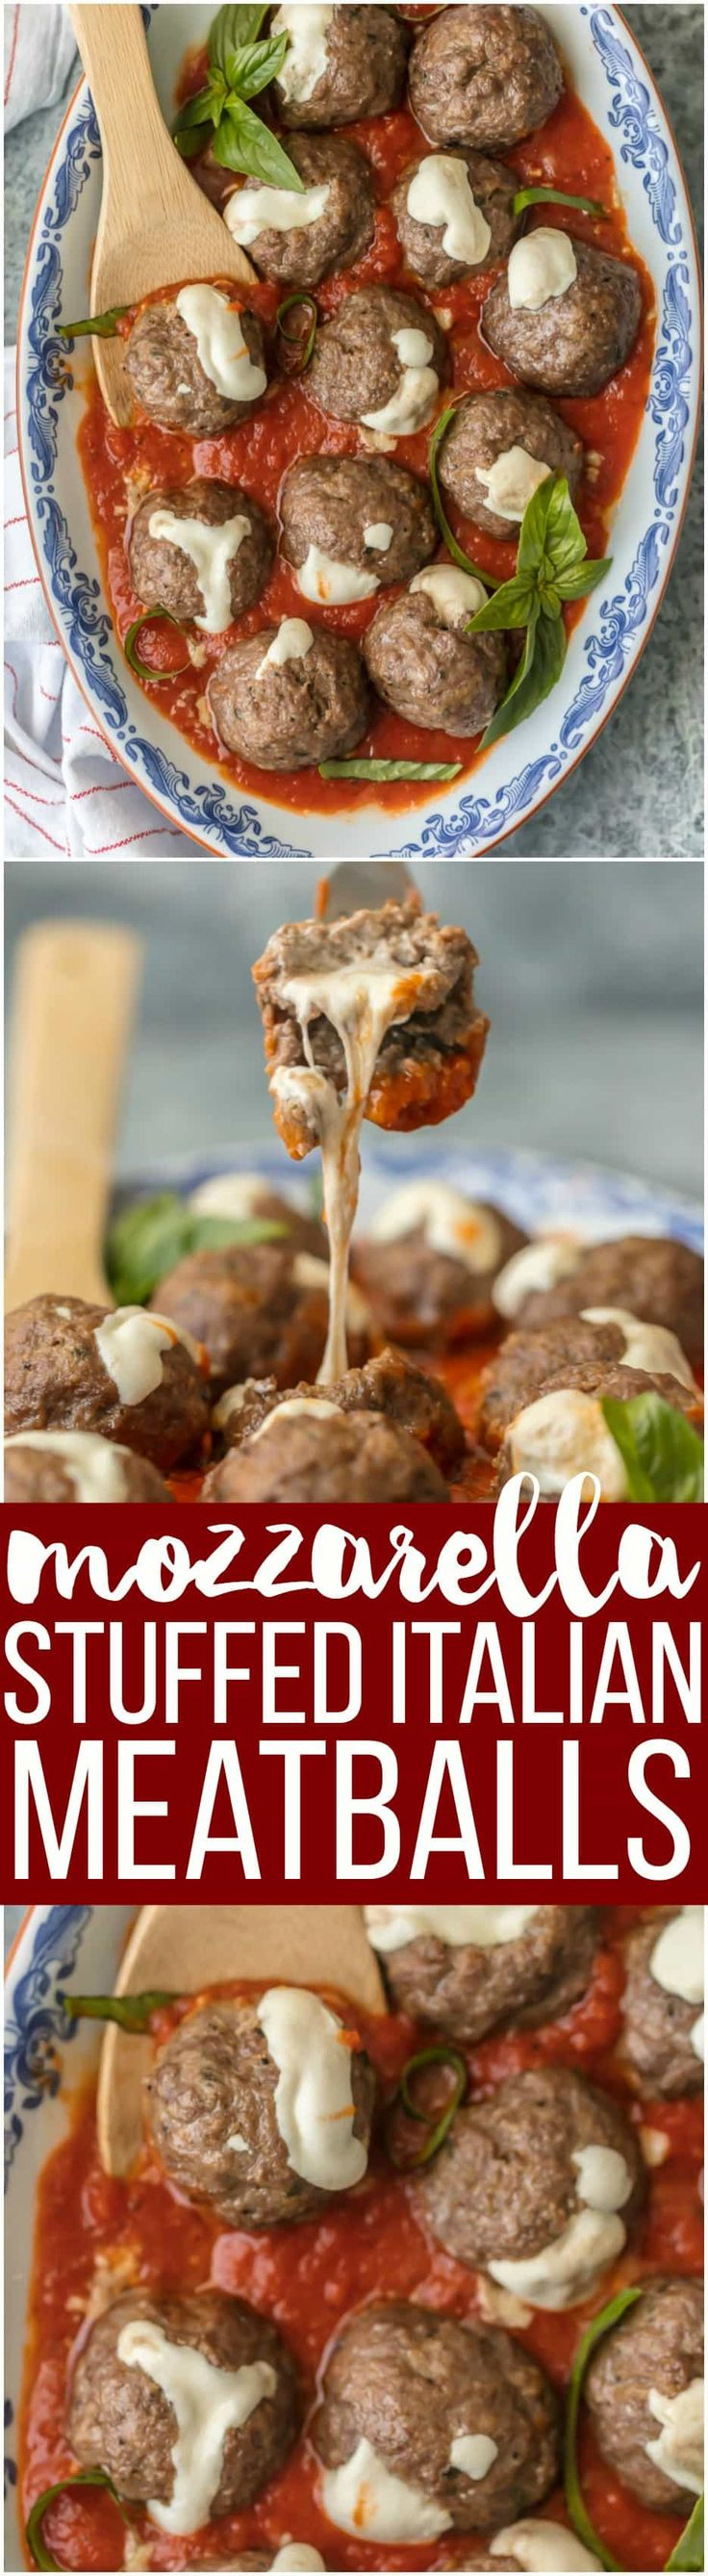 These MOZZARELLA STUFFED ITALIAN MEATBALLS are the ultimate appetizer. Stuffed with whole milk mozzarella and oh so juicy and tender, you better make a double batch. via @beckygallhardin